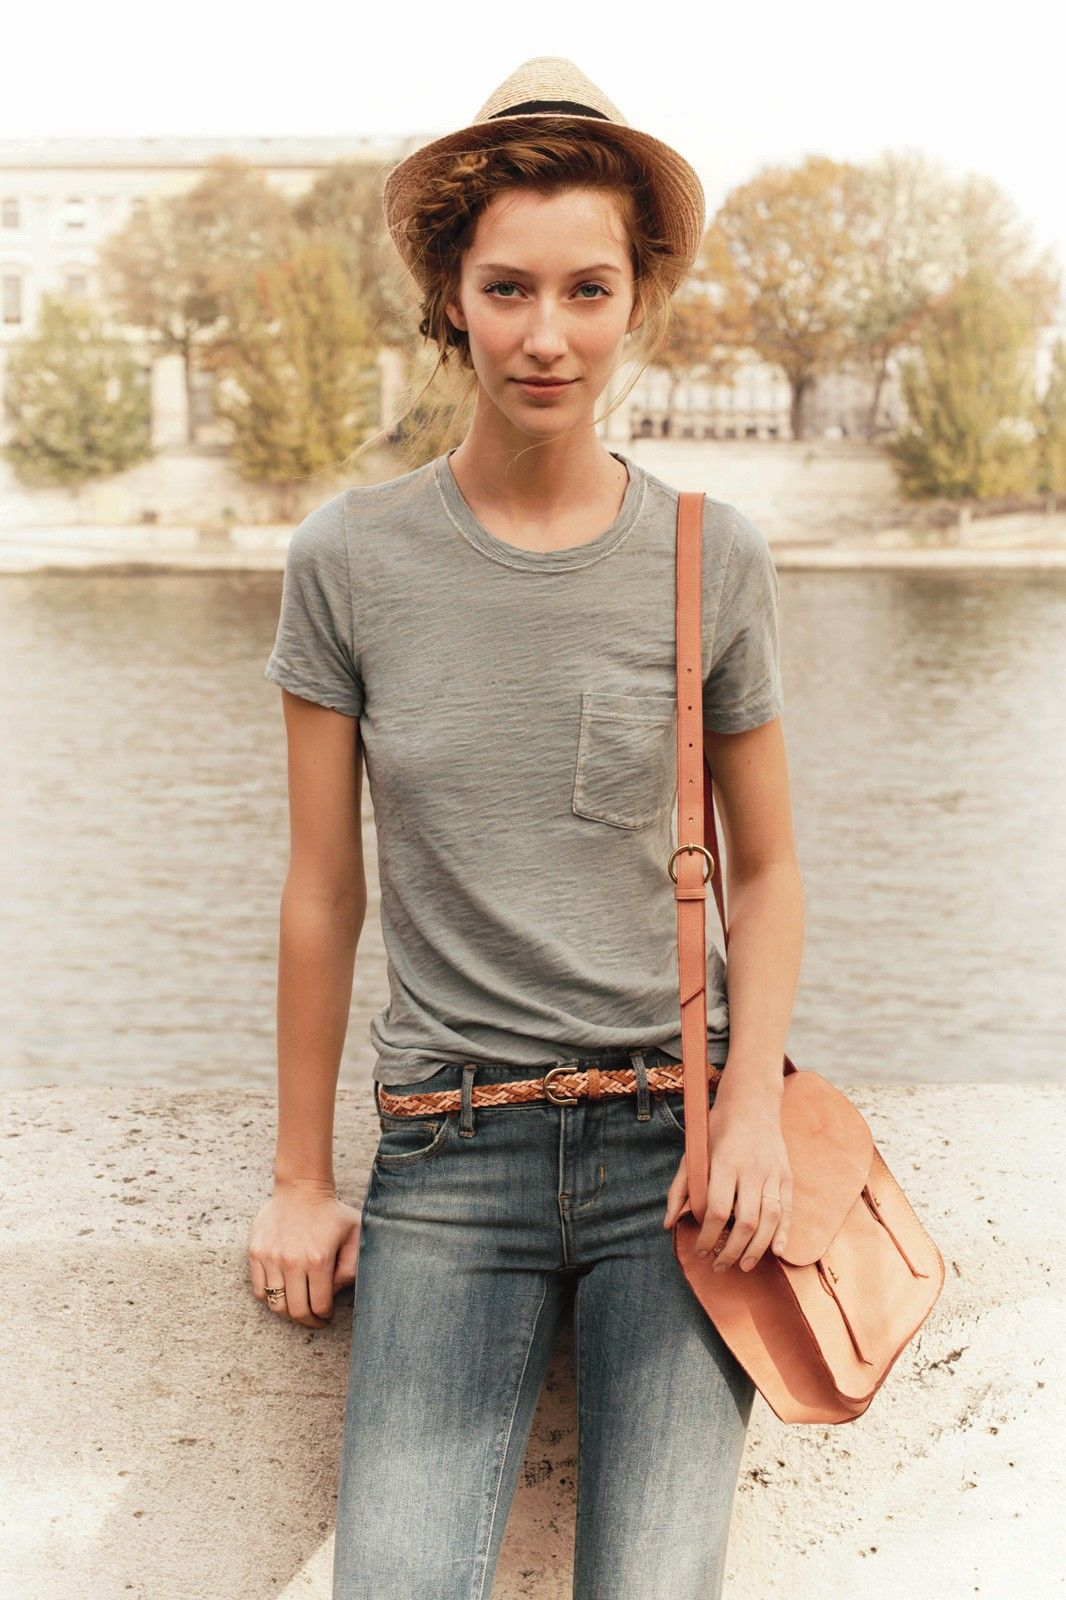 T-shirt-and-jeans outfit